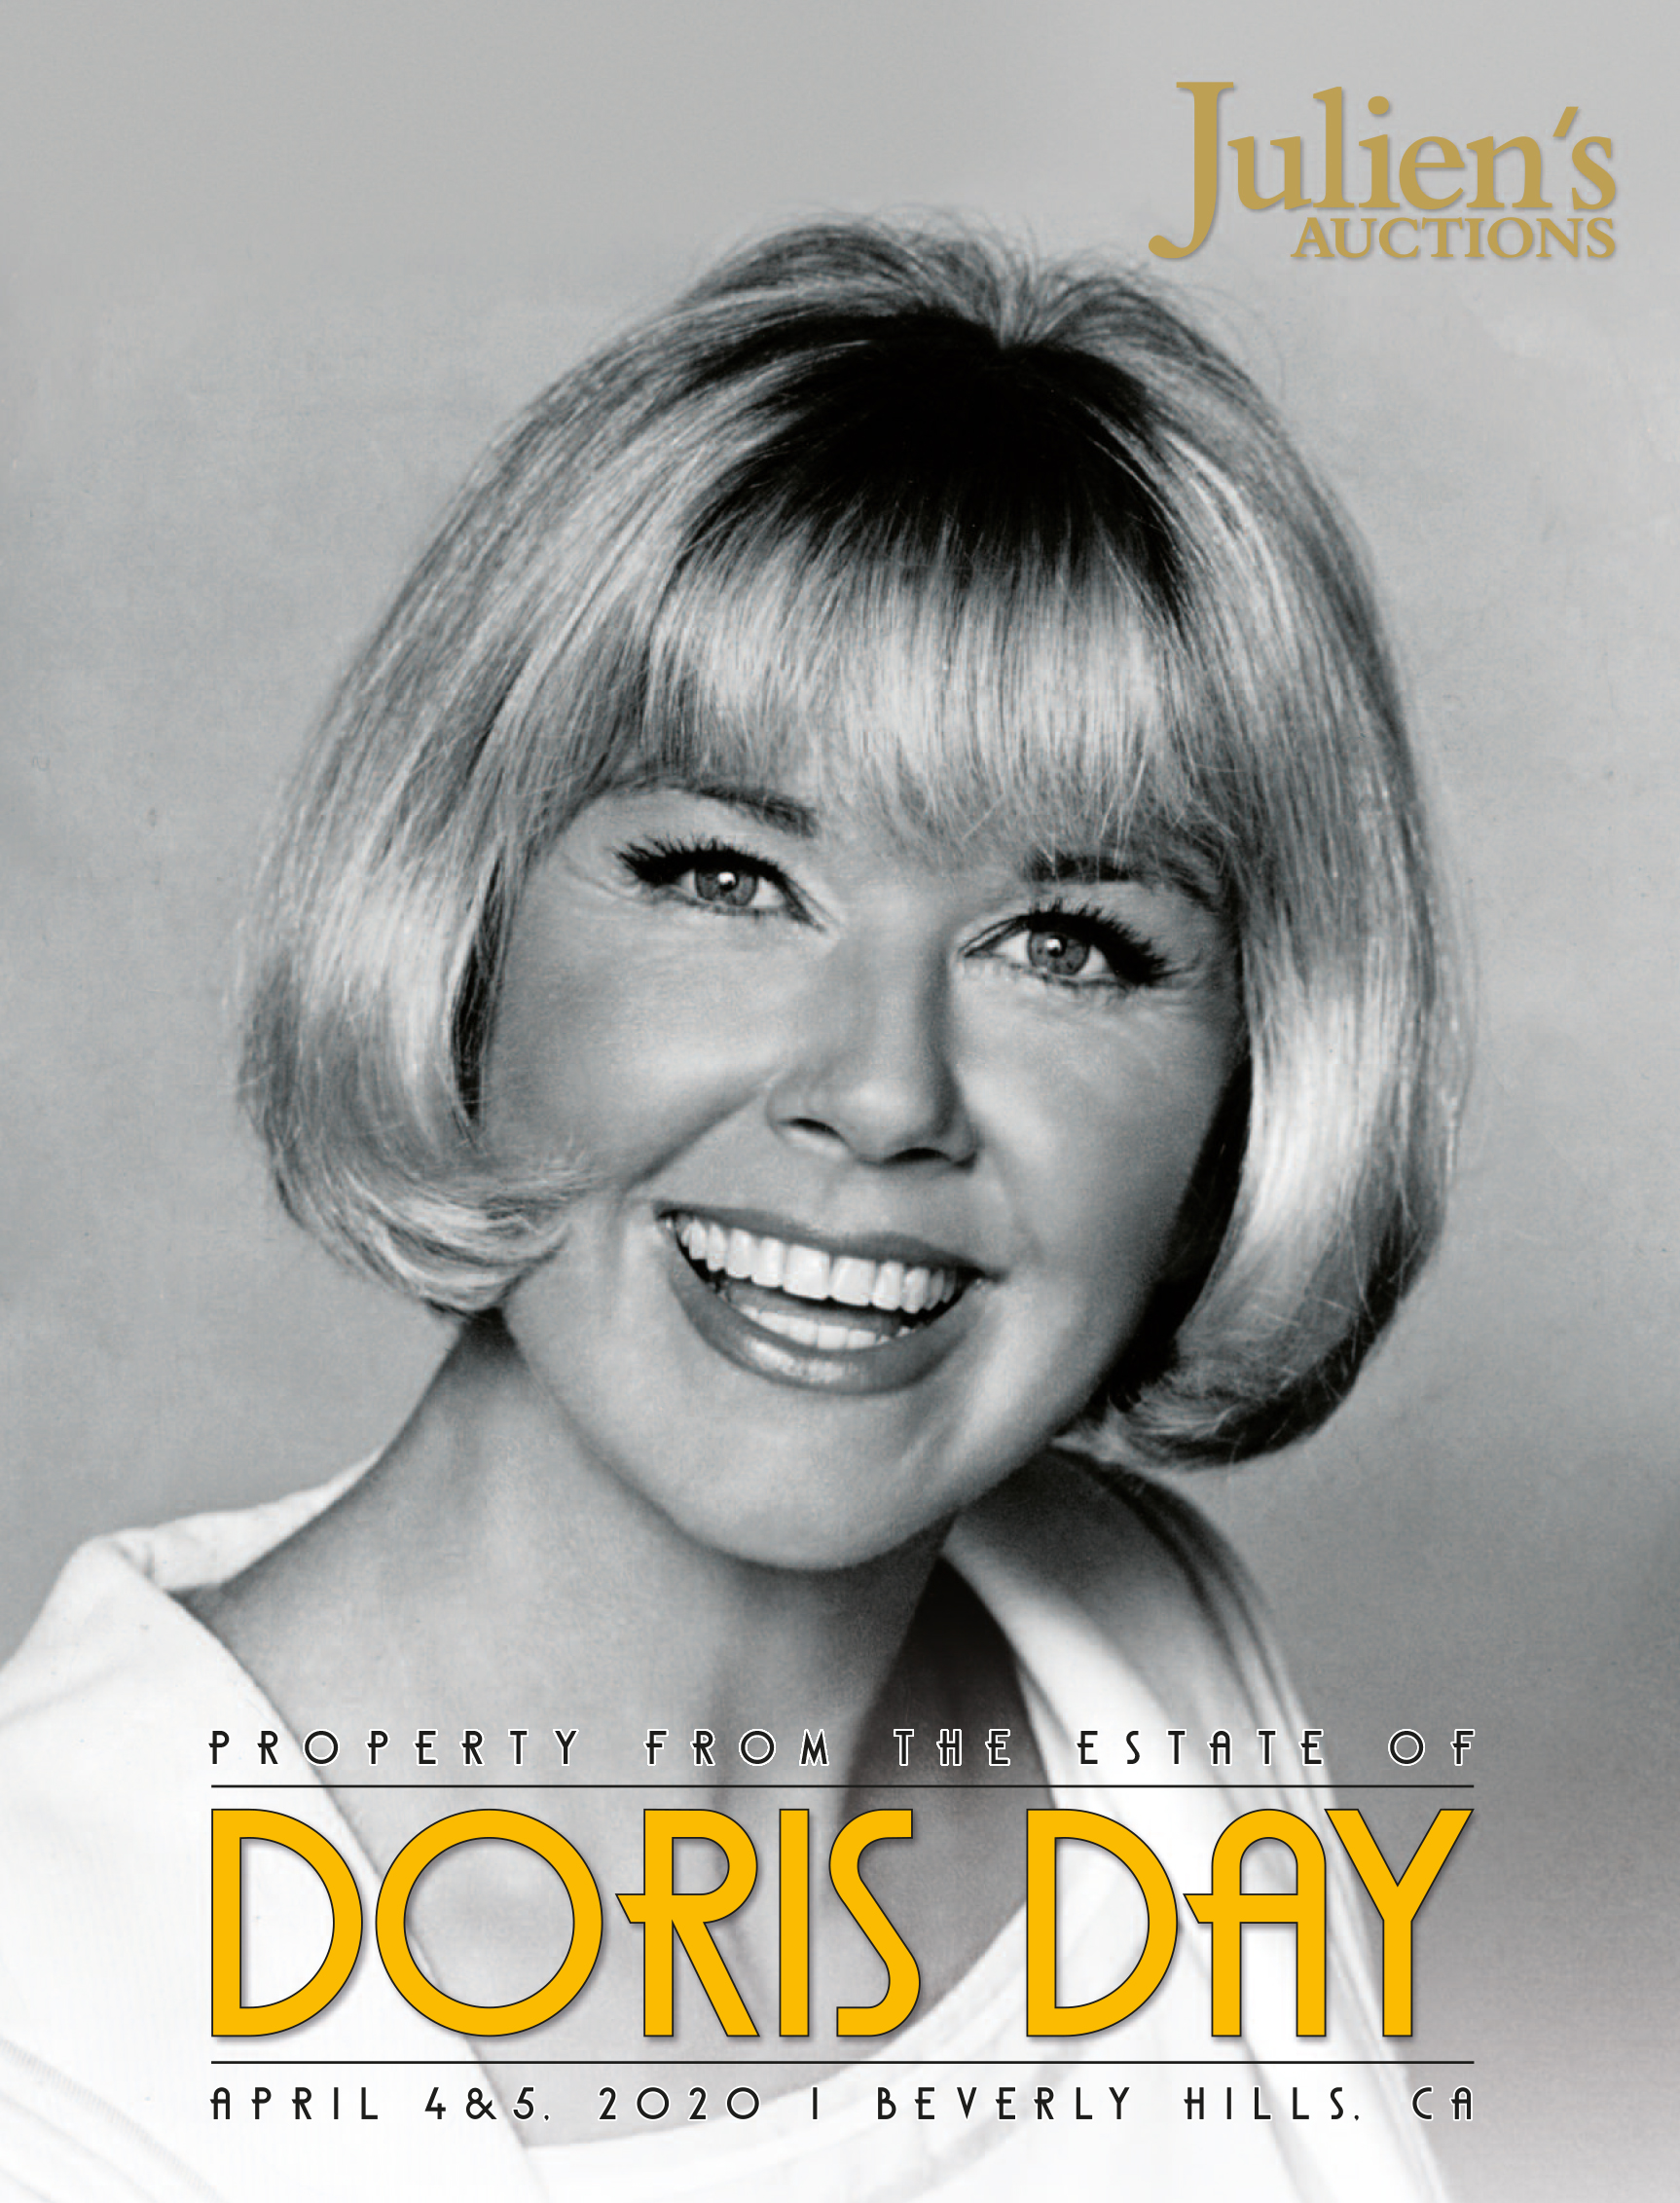 Doris Day auction